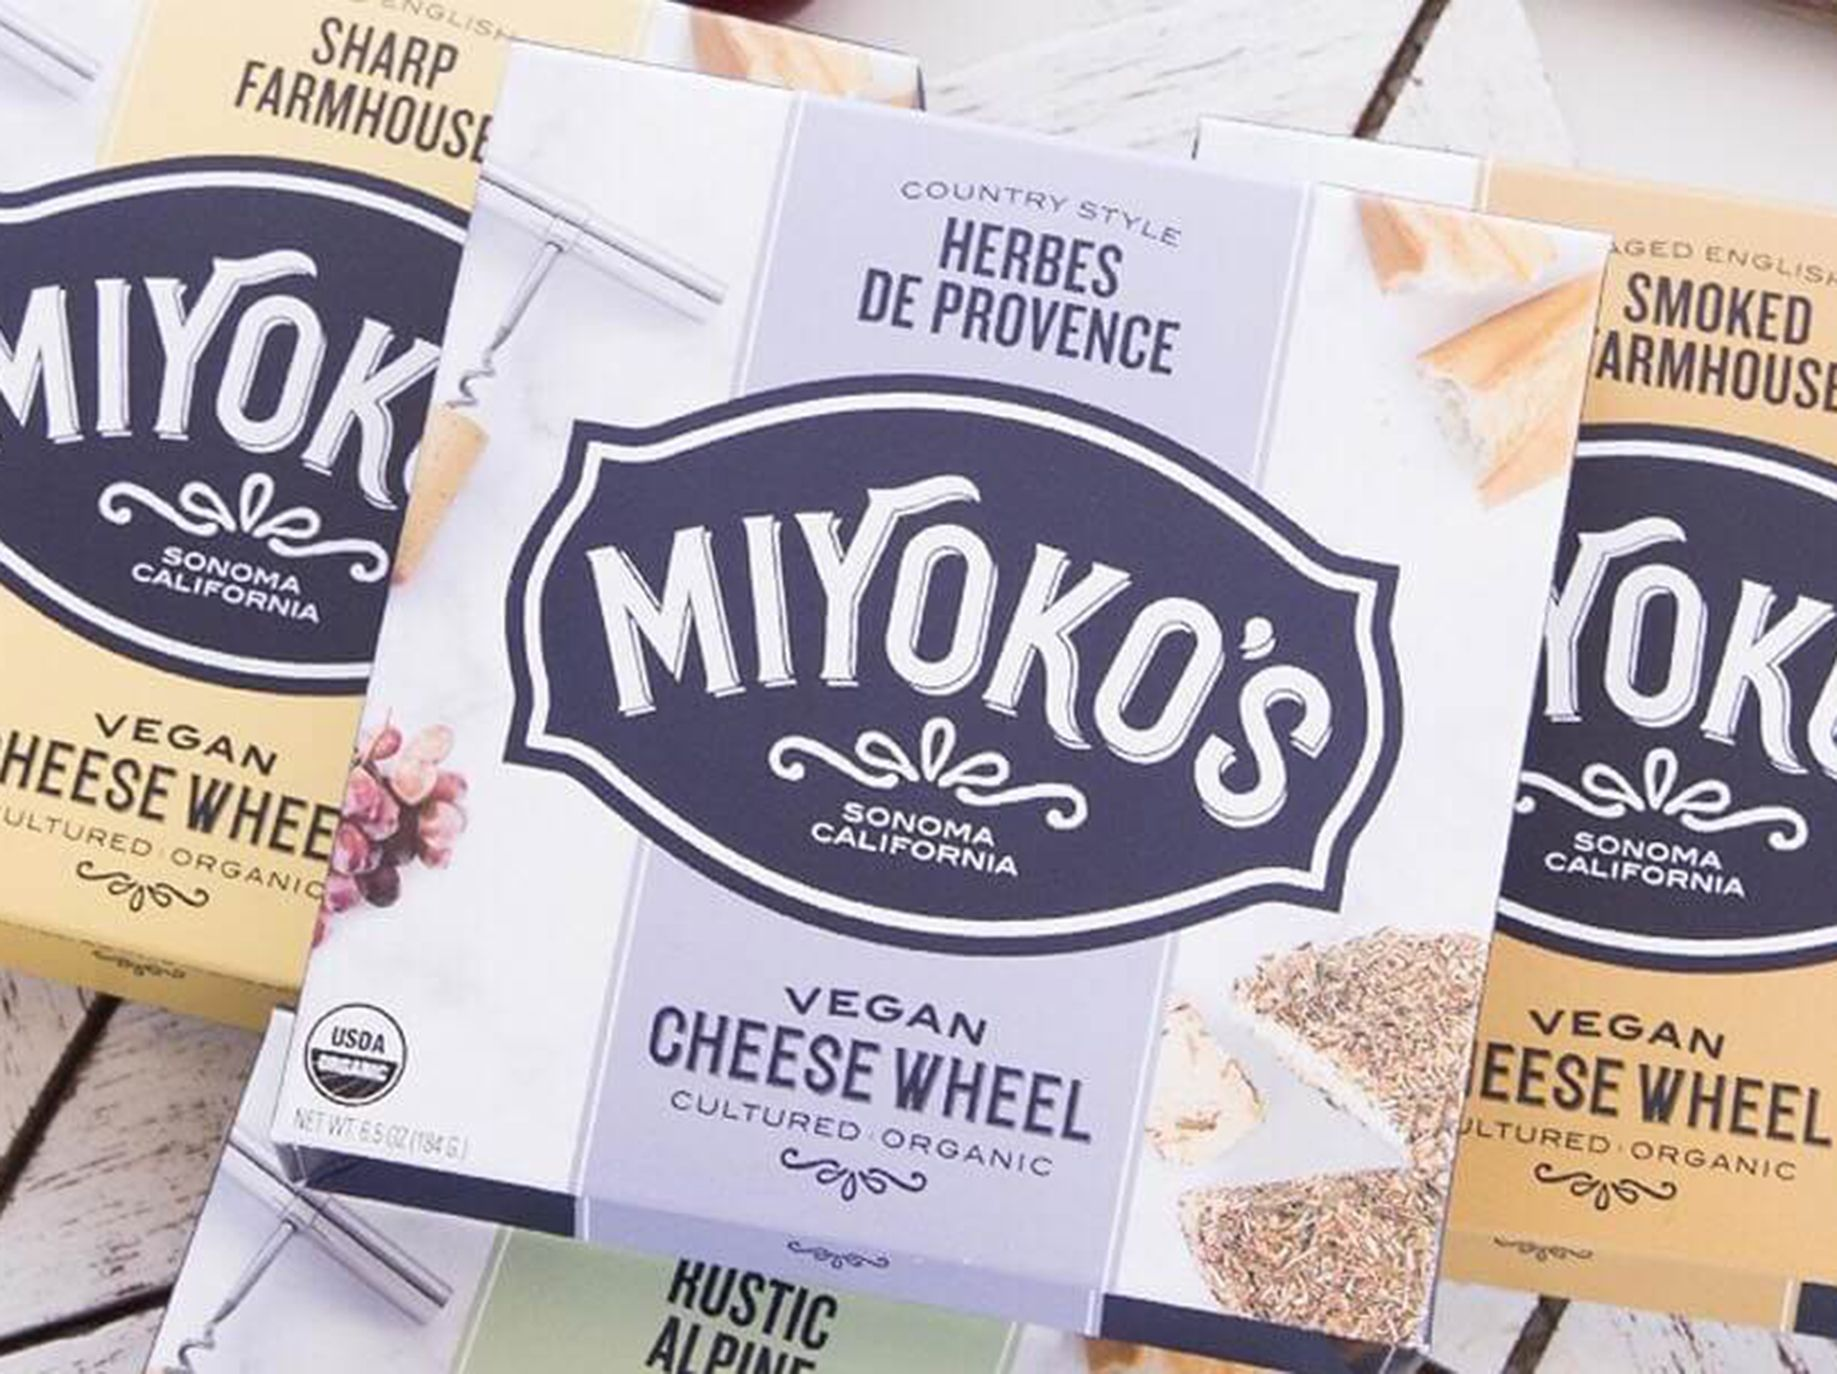 """Miyoko's concludes its mission statement by declaring that its """"Phenomenally Vegan"""" cream cheese and other products are about """"How we change the world. Together."""""""